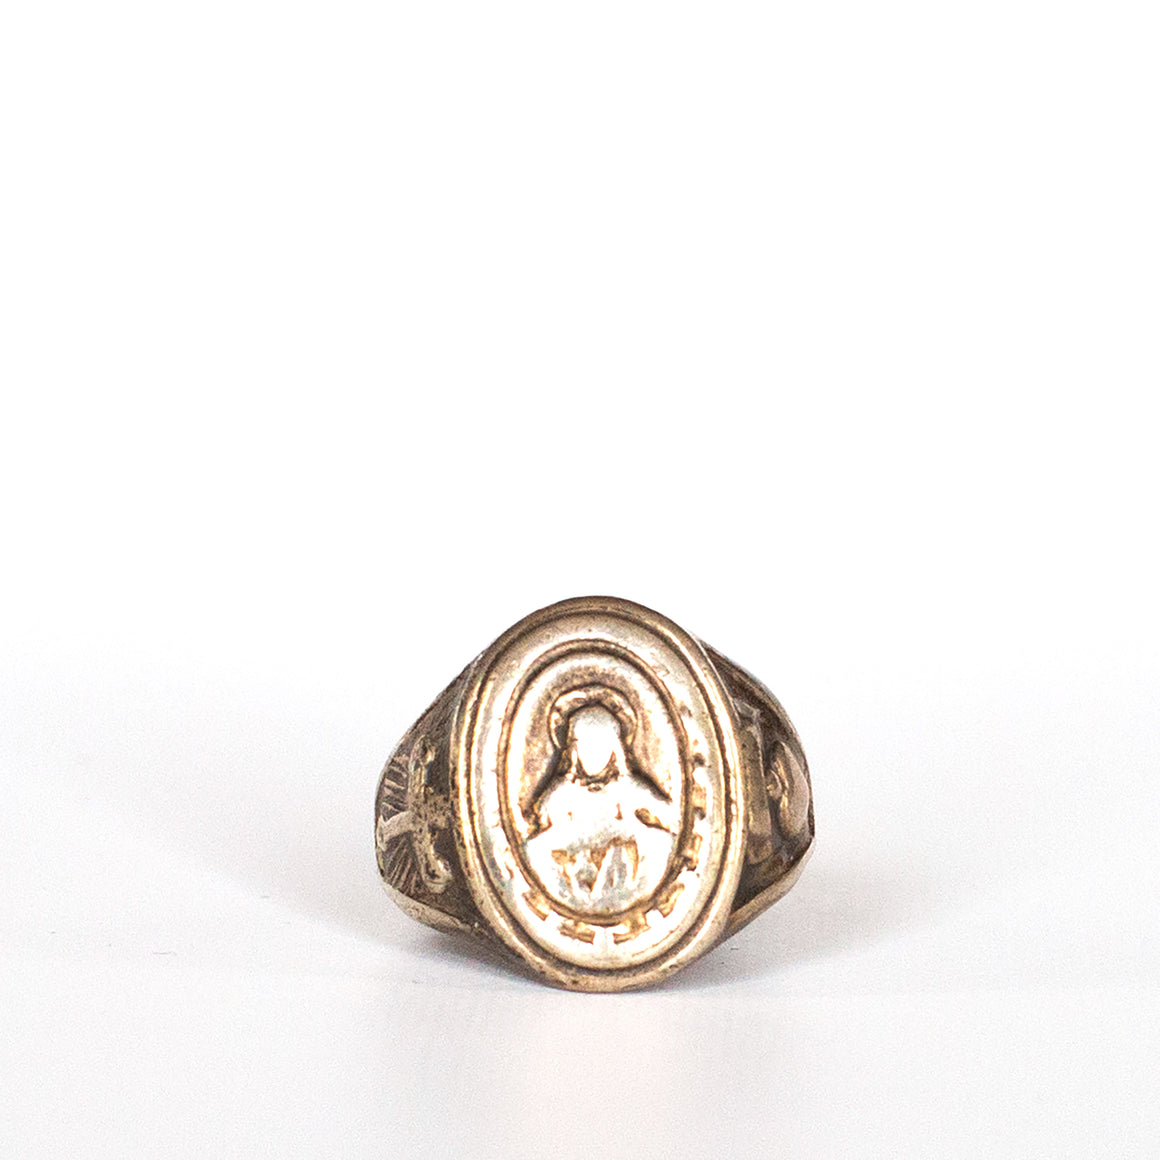 VINTAGE JEWELRY | STERLING RELIGIOUS RING (SIZE 6.5)